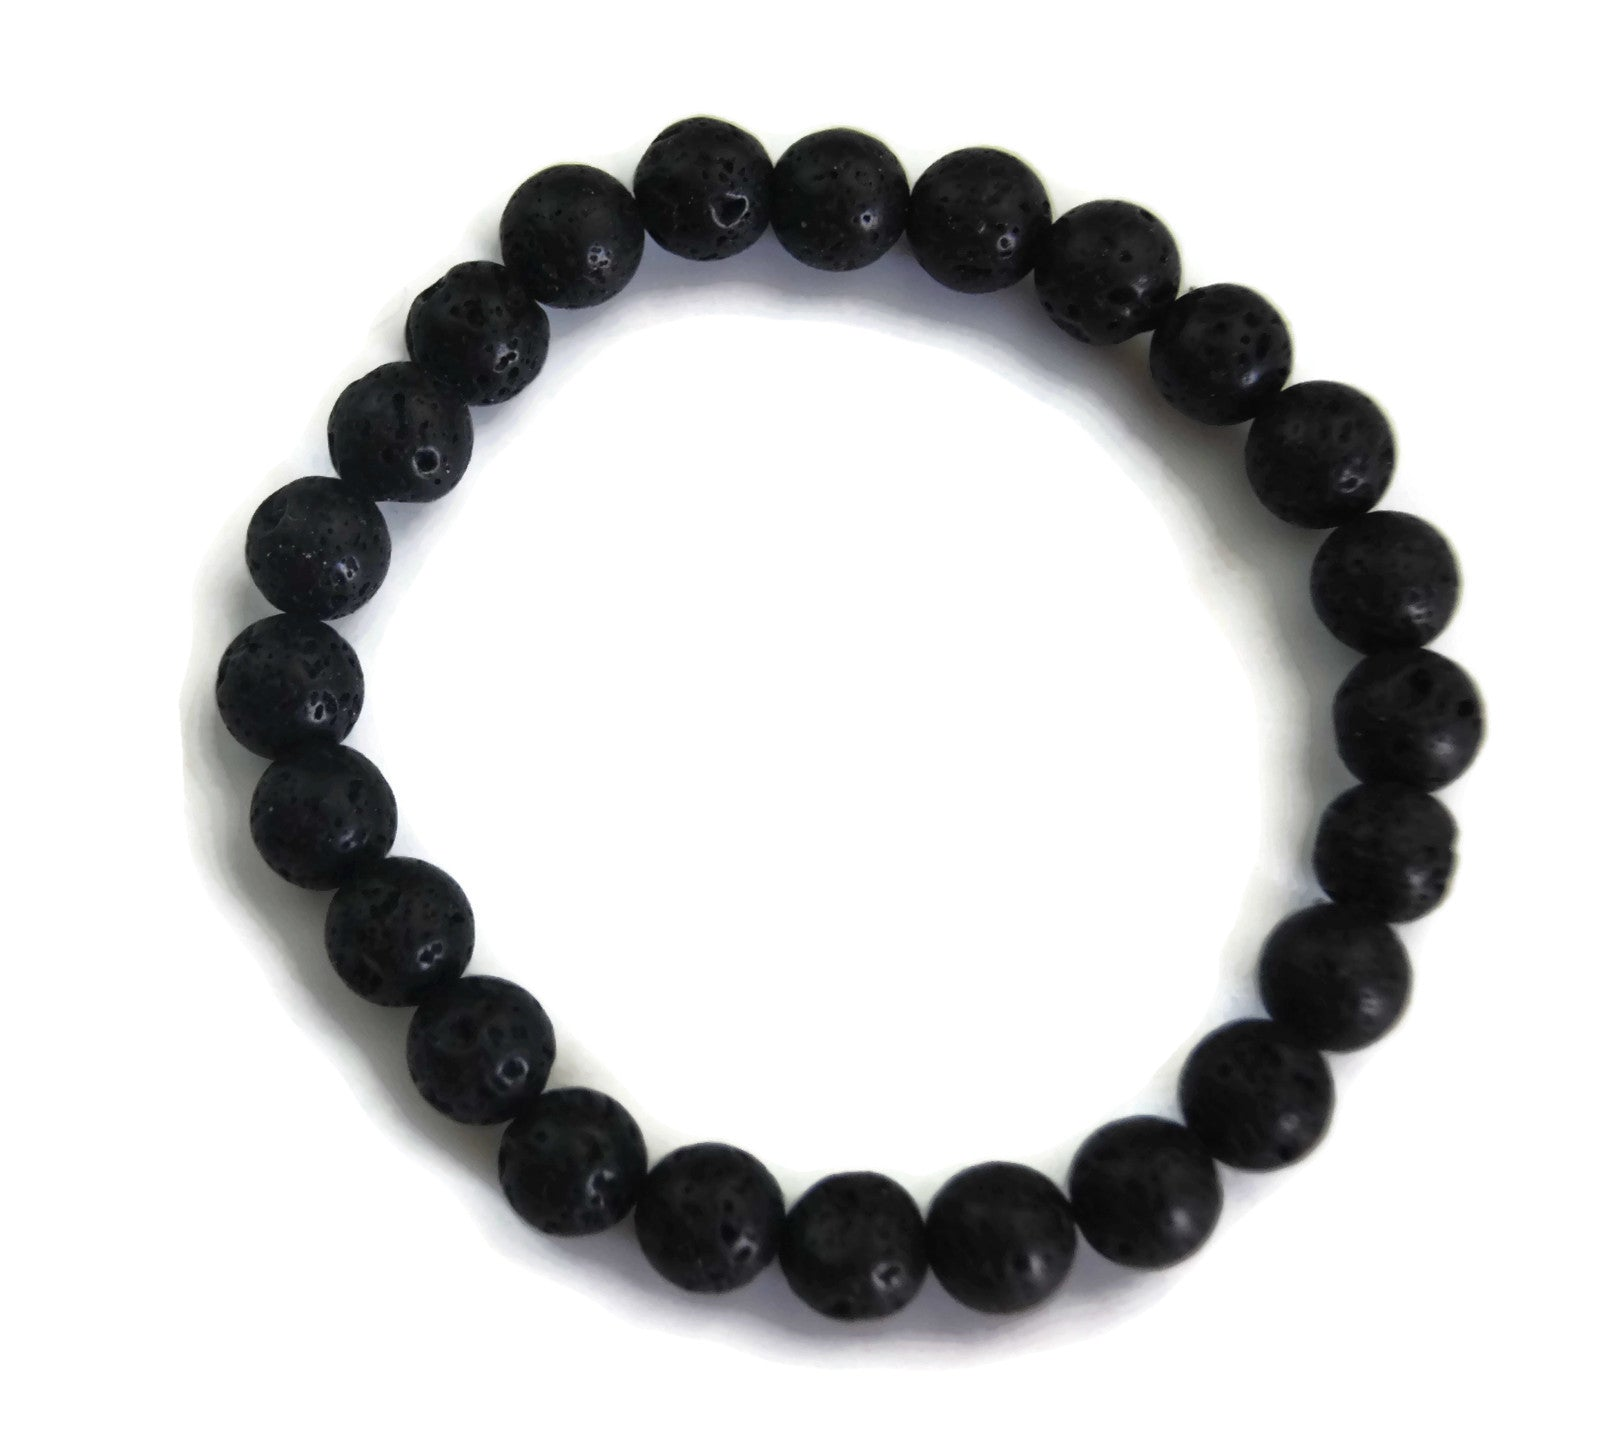 Lotus Line Black Lava Stone Meditation Yoga Wrist Mala Stretch Bracelet, Root Base Chakra